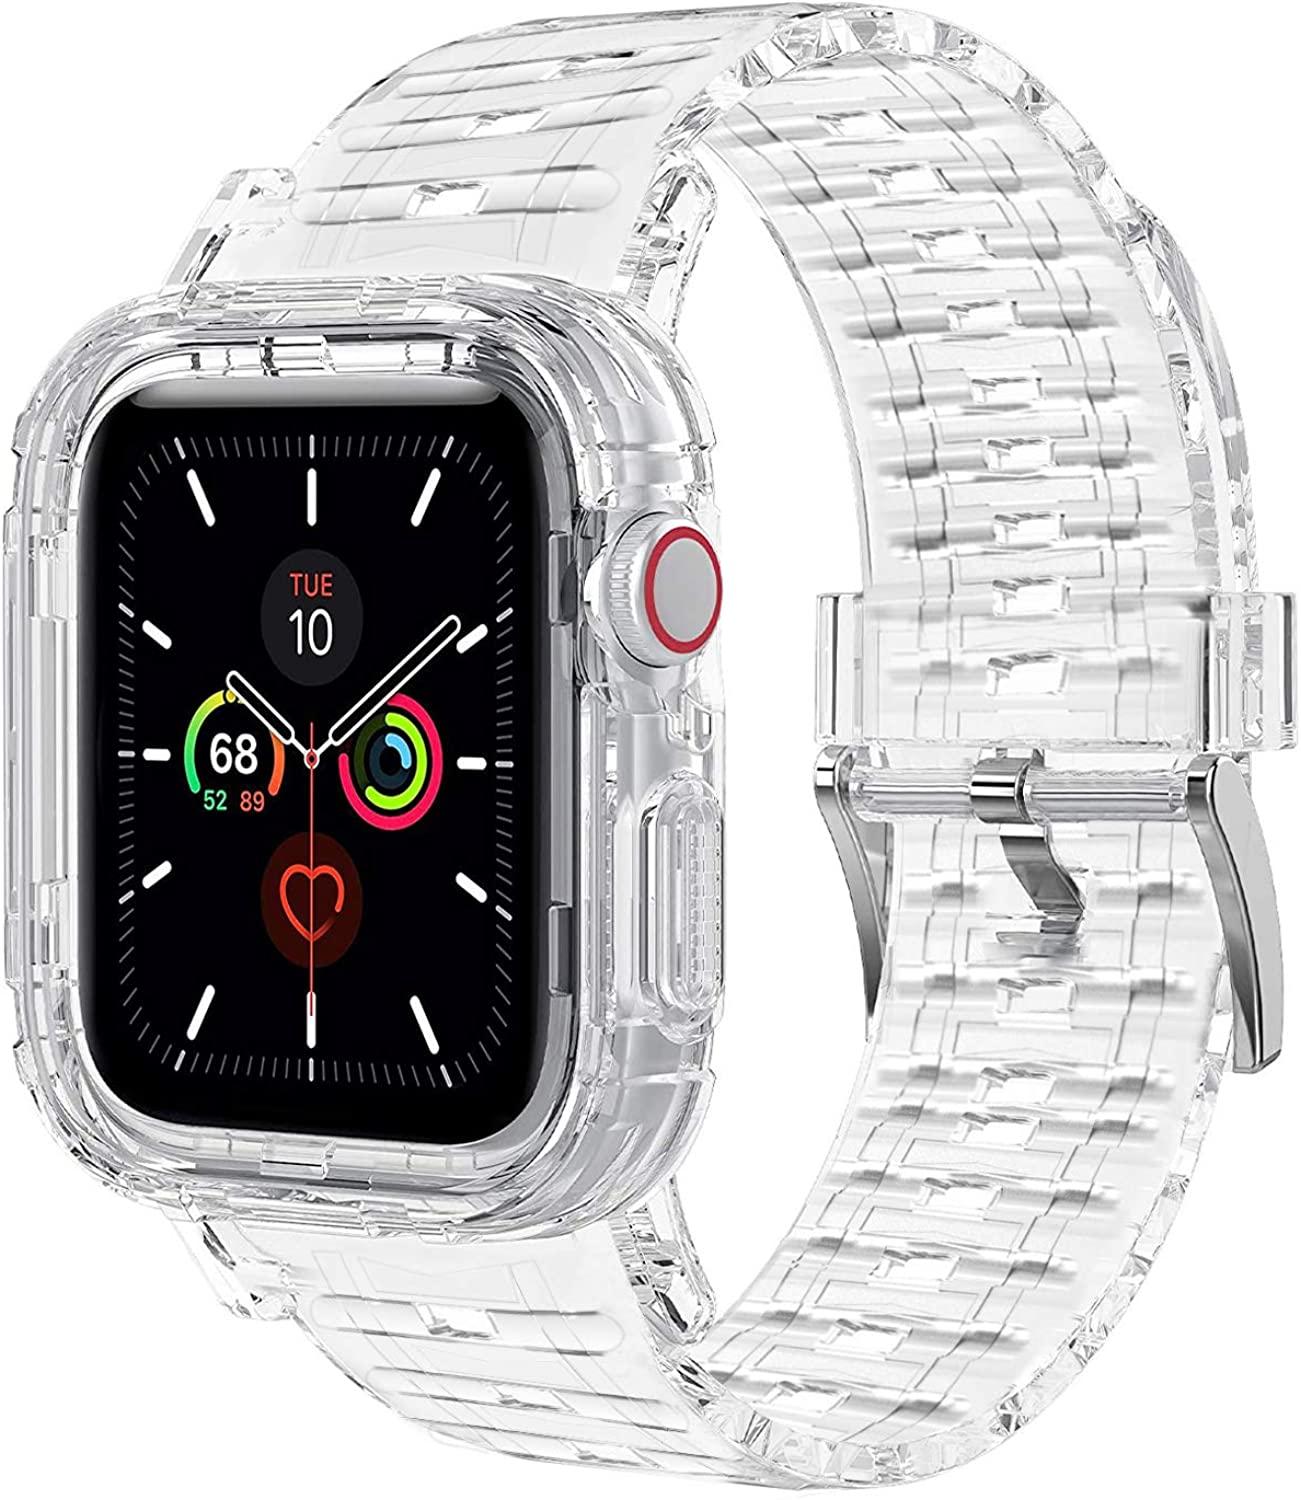 Clear Band for Apple Watch 38mm 40mm,Transparent Strap for Apple Watch Compatible with iWatch SE/6/5/4/3/2/1